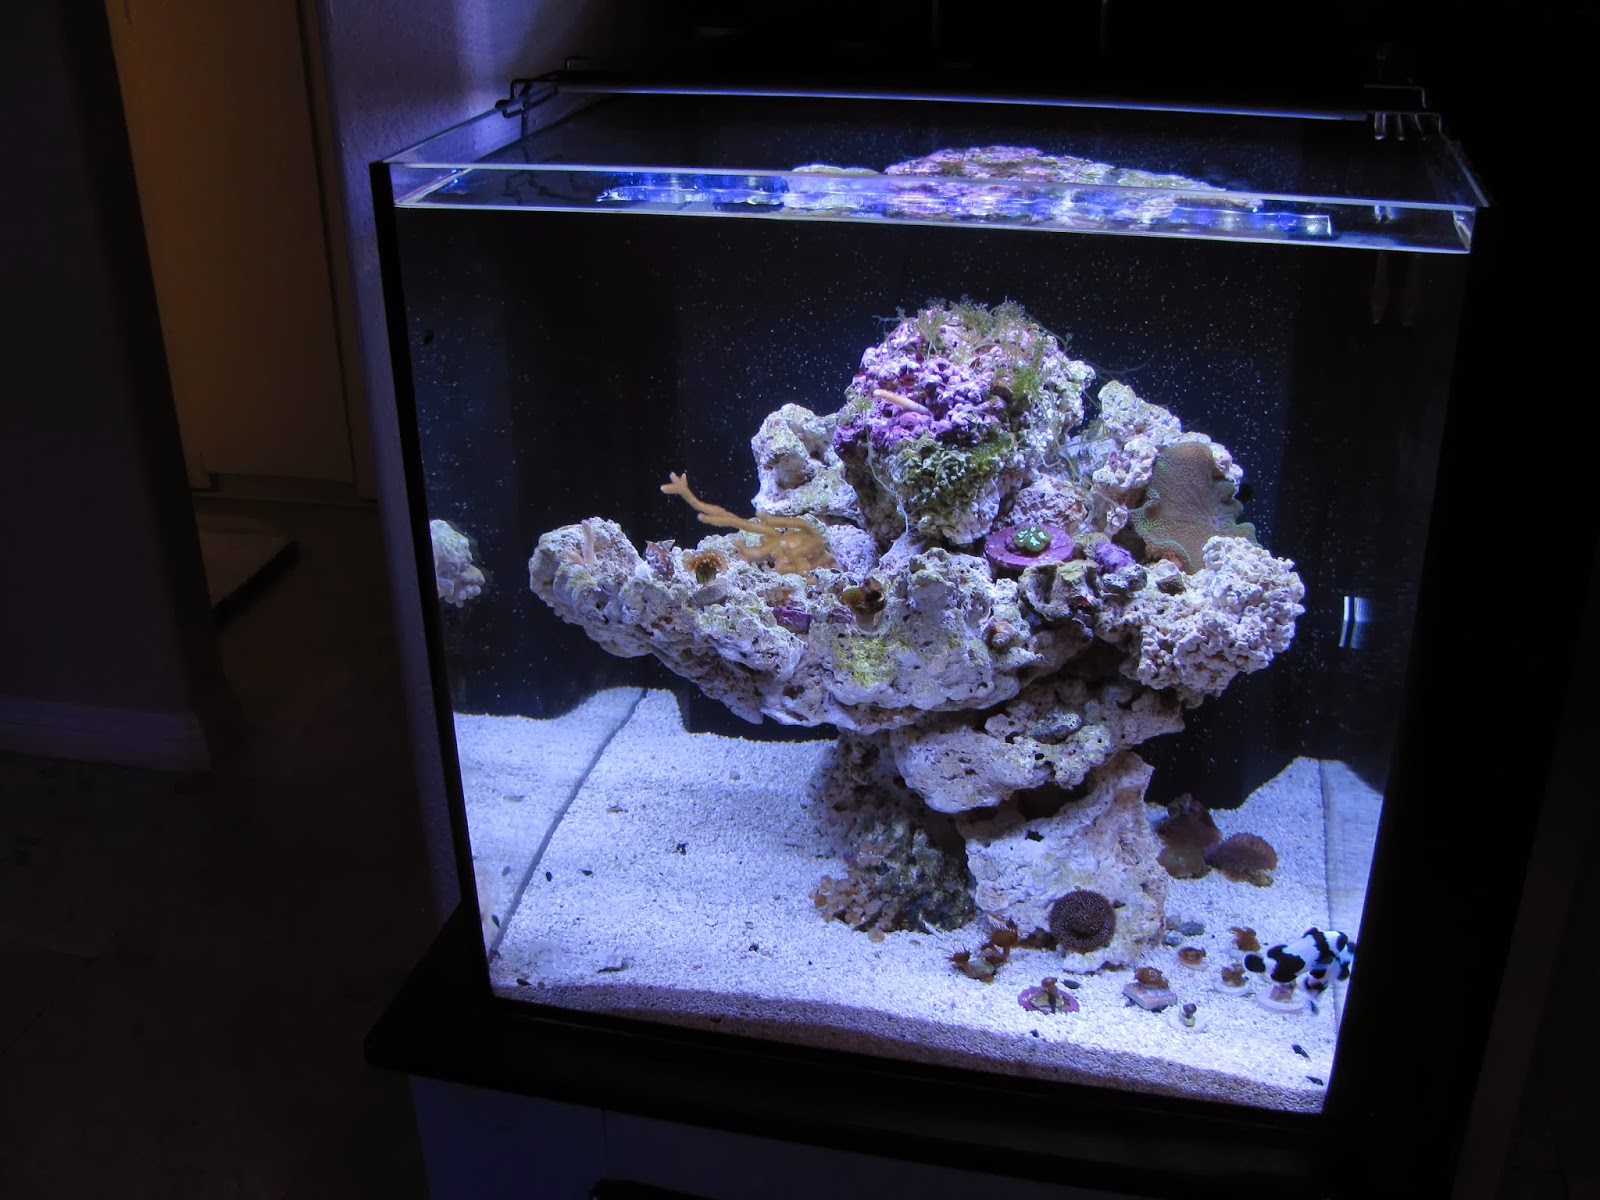 Fish aquarium lighting systems - Intensity Wise One Led Fixture Is Perfect For A Fish Only System Being Much Brighter Than I Expected I Would Think That Low Light Corals Such As